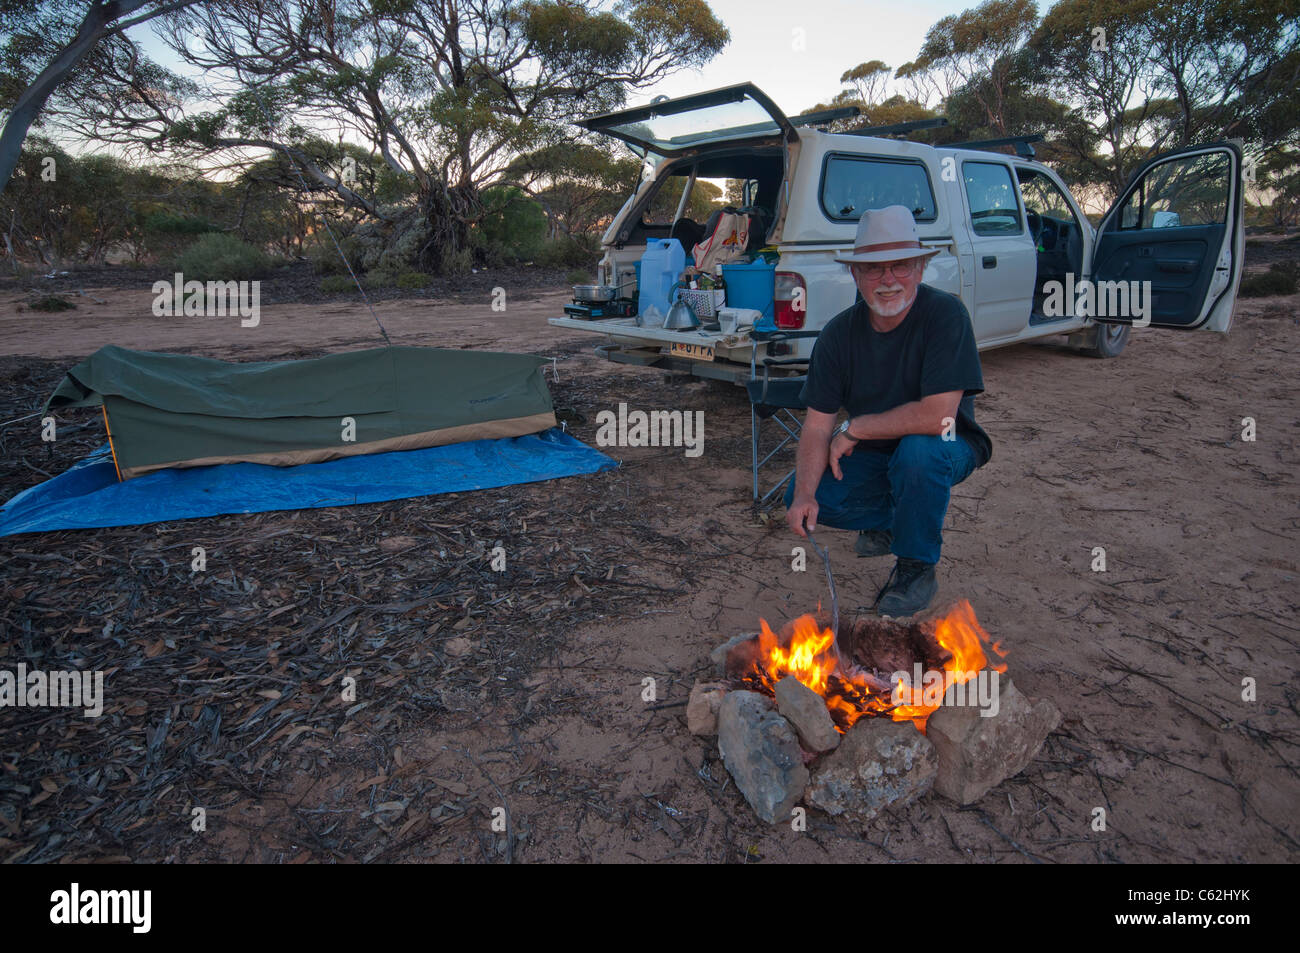 Man with campfire and pitched swag in the Australian outback - Stock Image